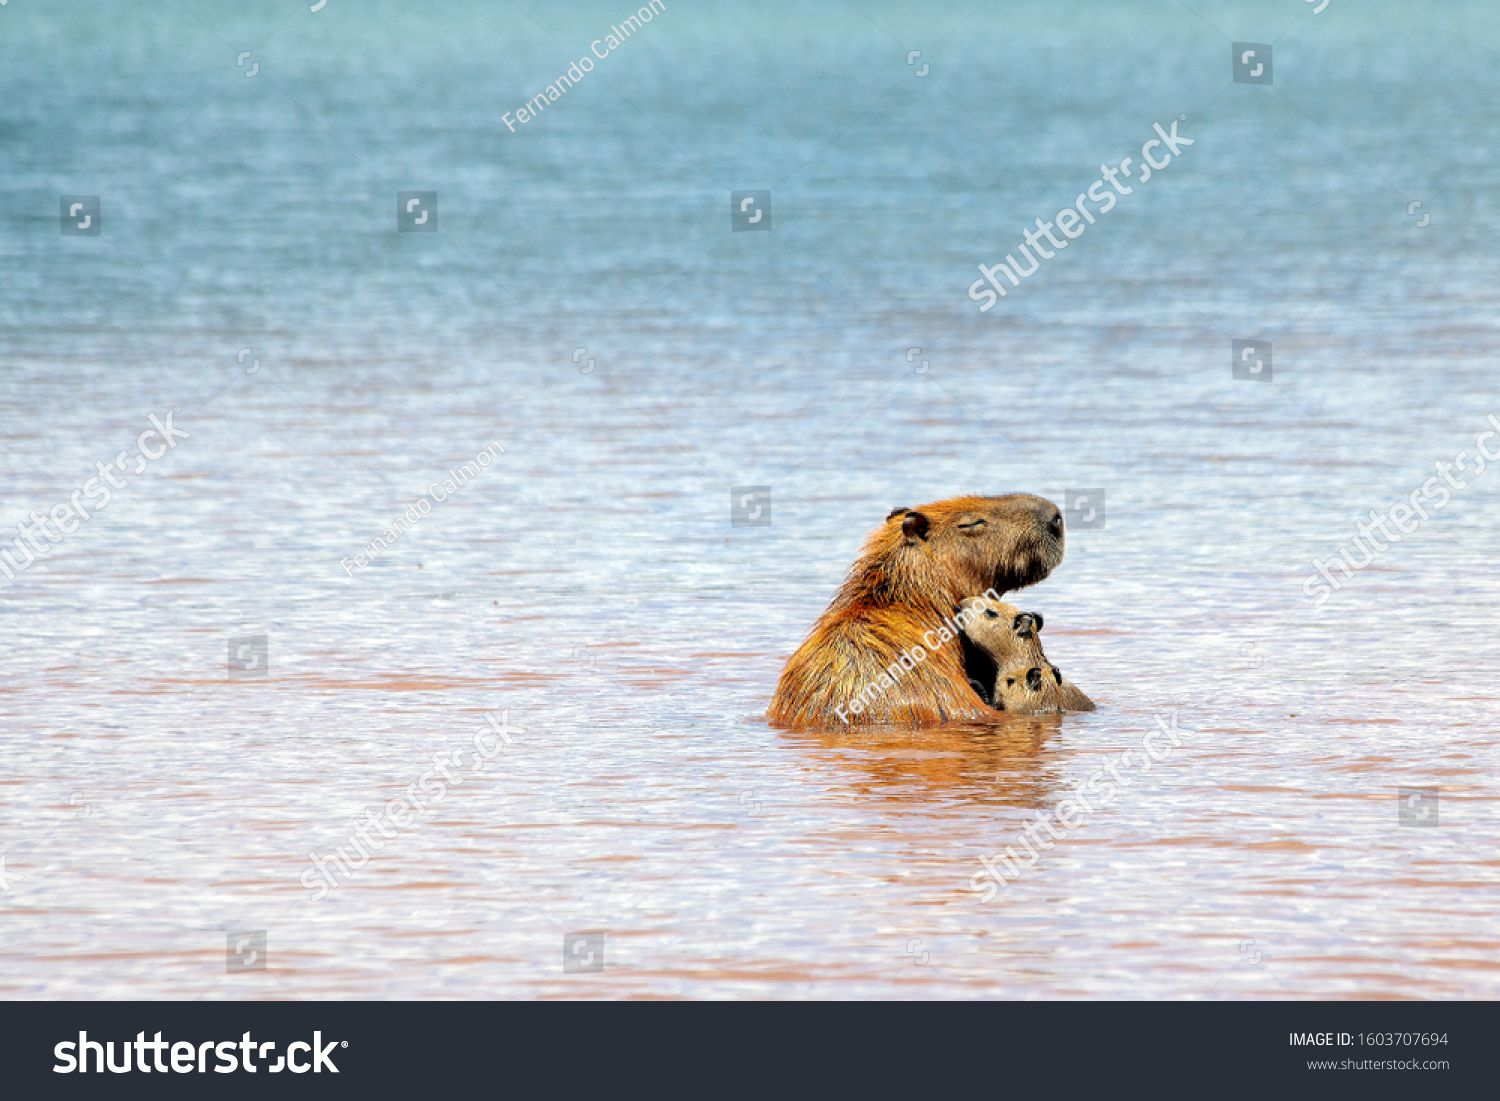 A capybara mother bathing with her children inside Parano¨¢ Lake in Brasilia, Brazil. The capybara is the largest rodent in the world. Species Hydrochoerus hydrochaeris. Wildlife. Cerrado #Ad , #Affiliate, #Lake#Parano#Brazil#Brasilia